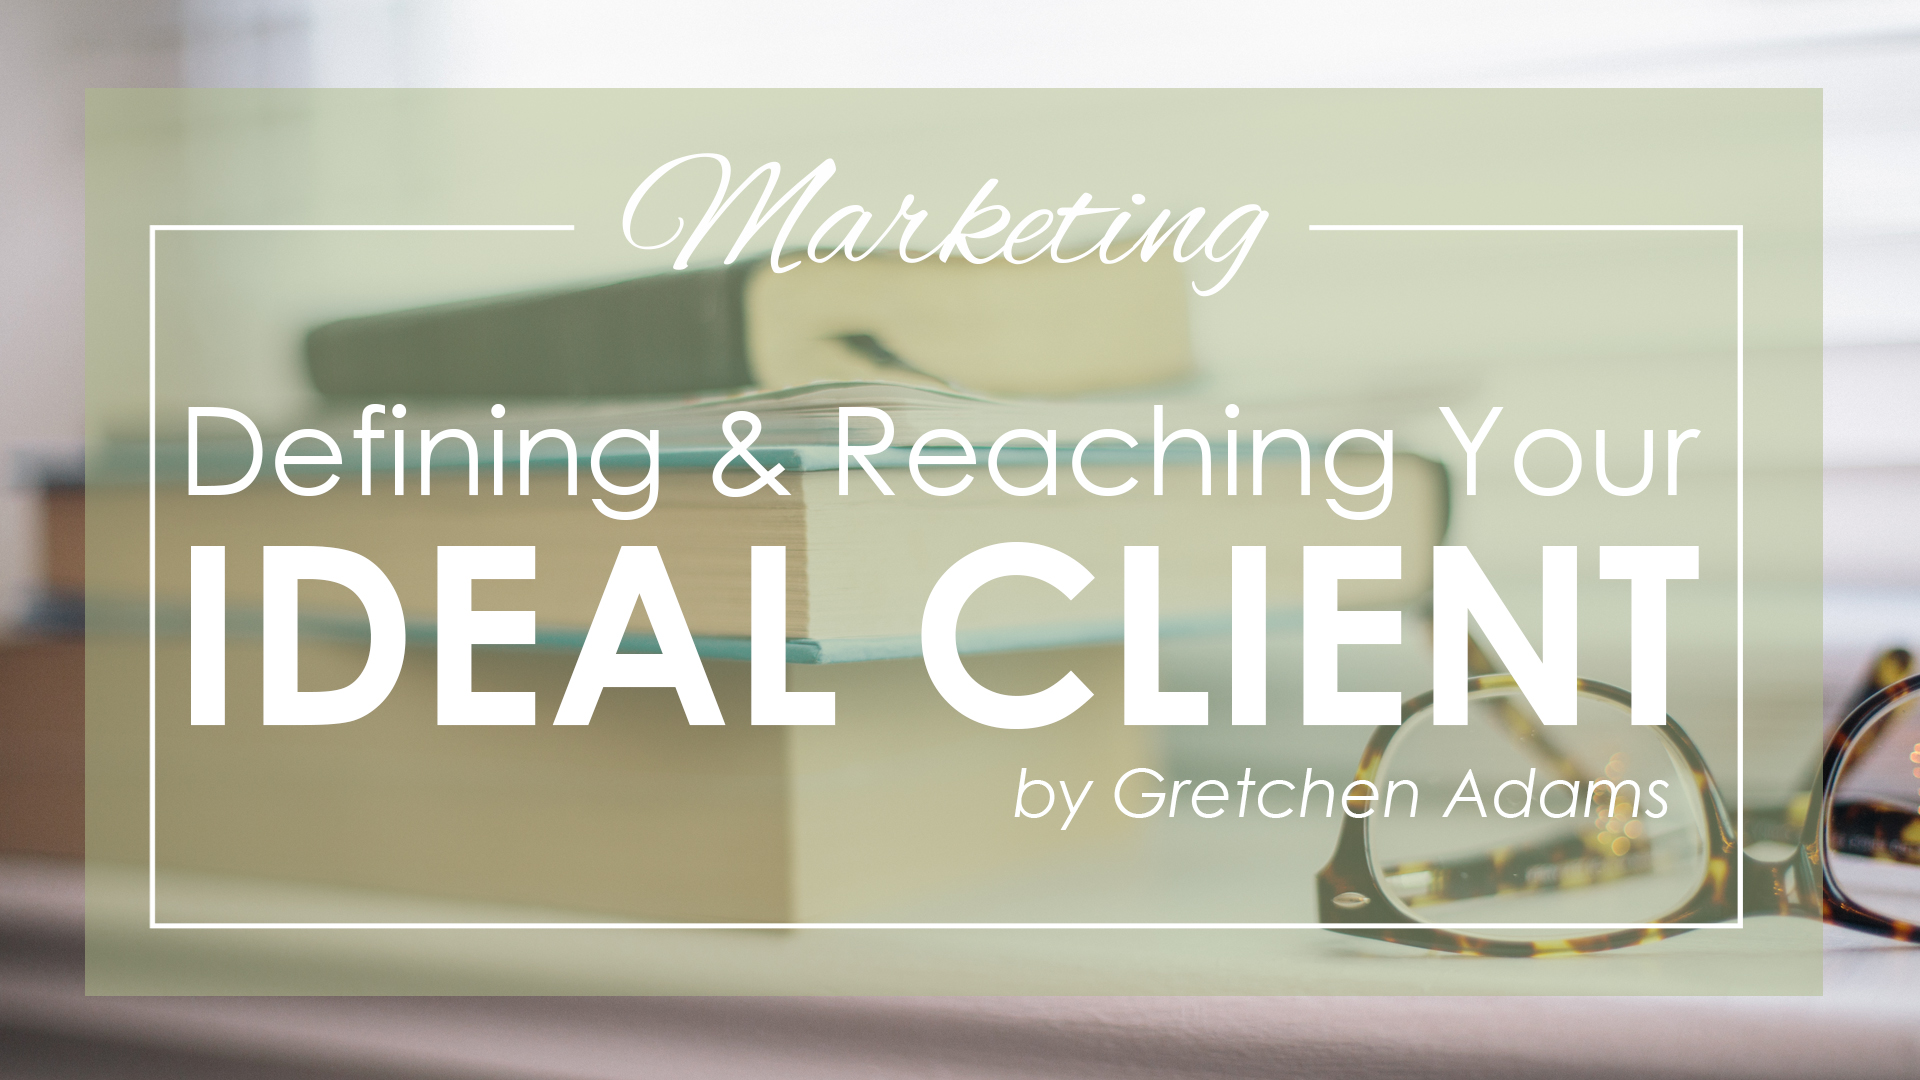 Defining & Reaching Your Ideal Client